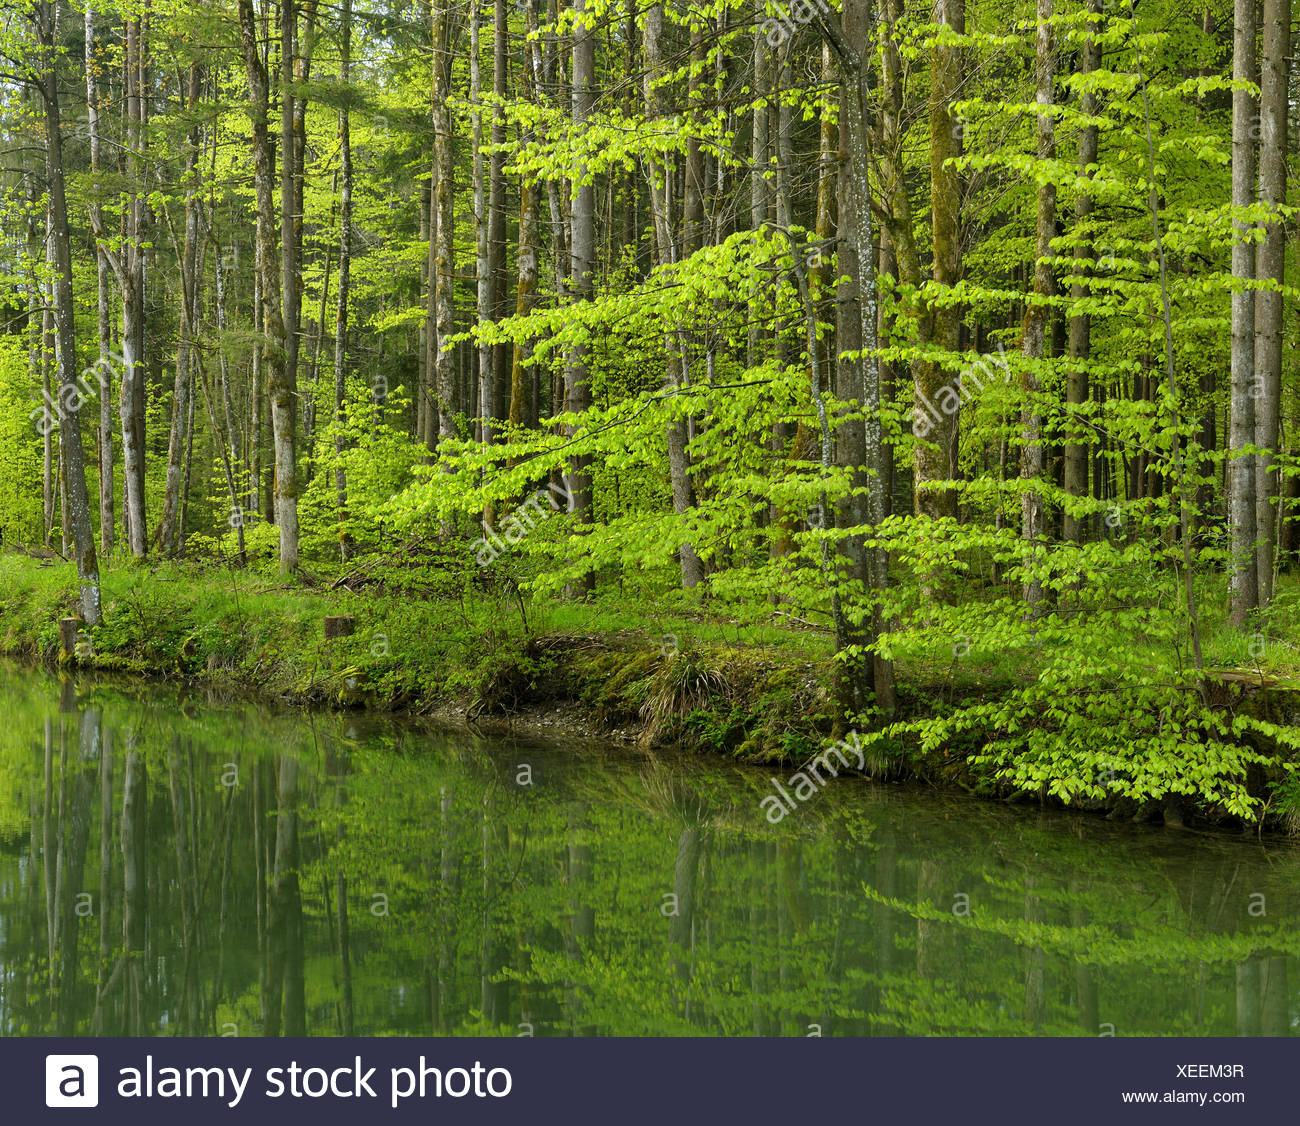 river with forest in spring, Germany, Bavaria - Stock Image